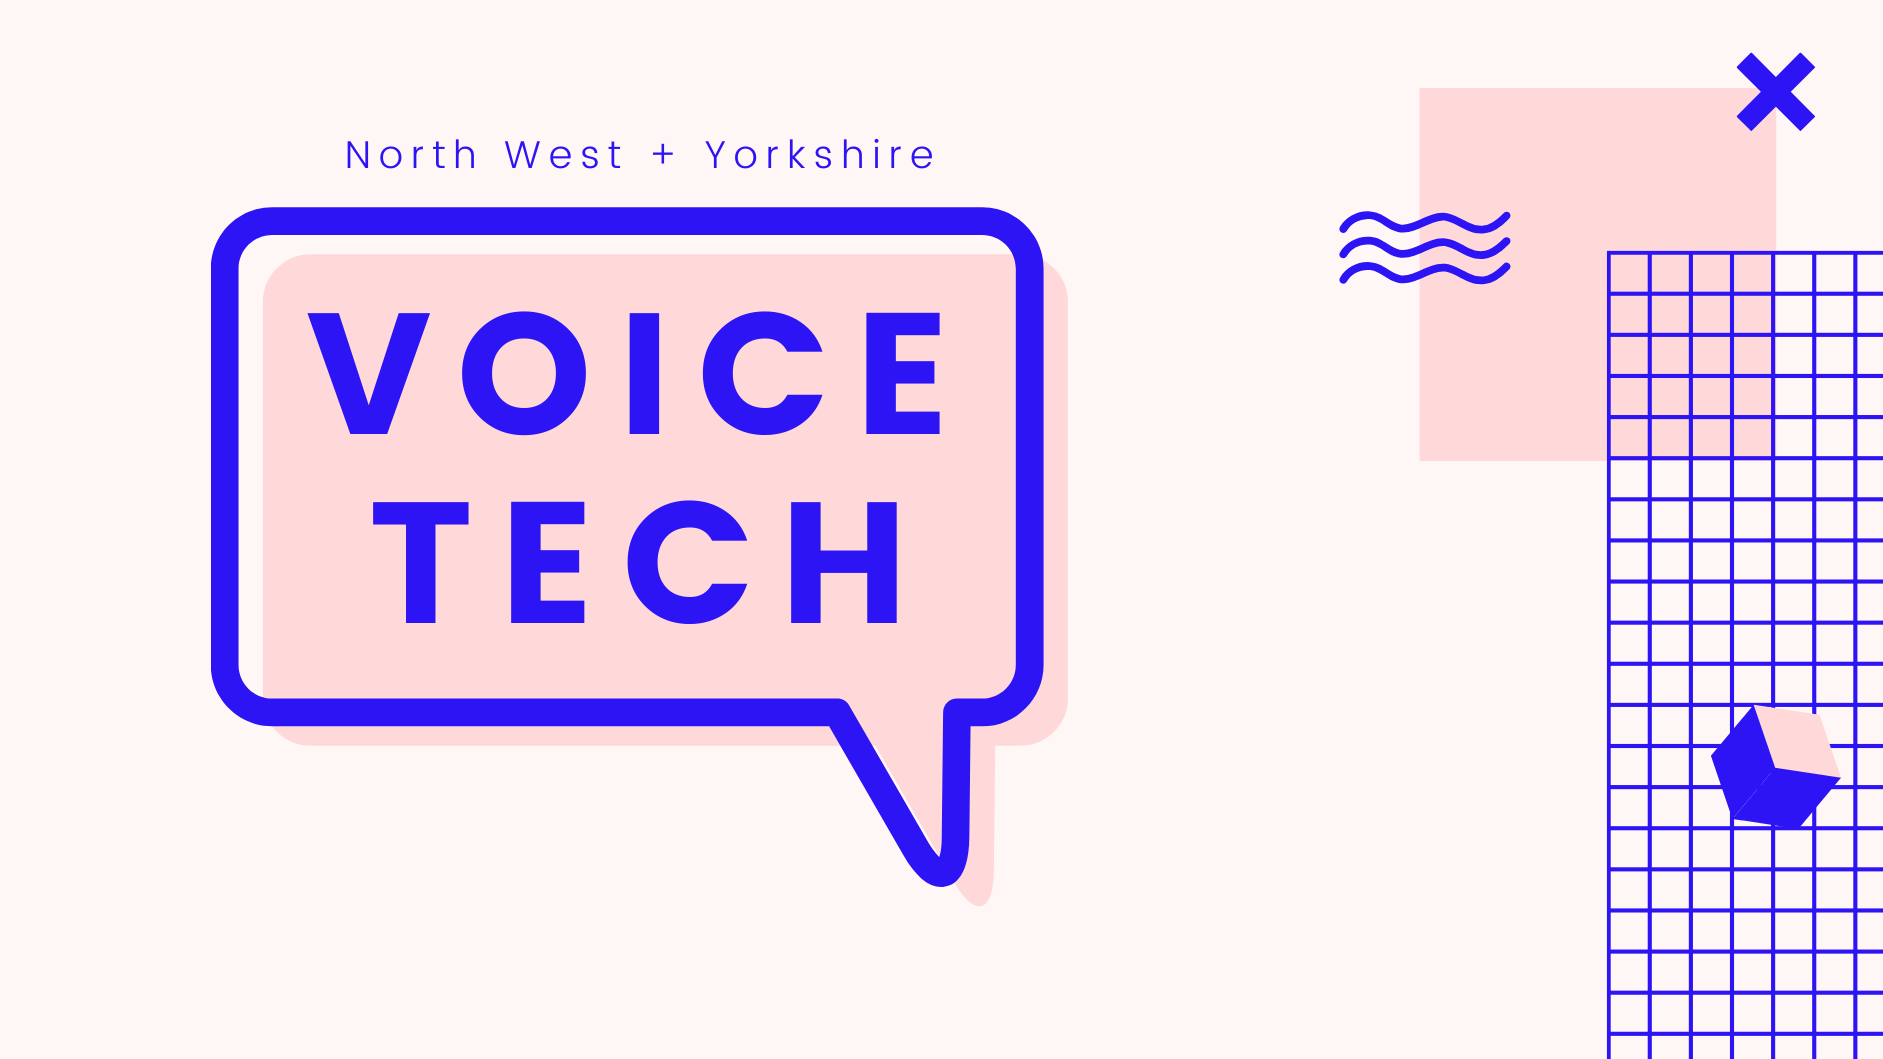 Voice Tech North (North West and Yorkshire)